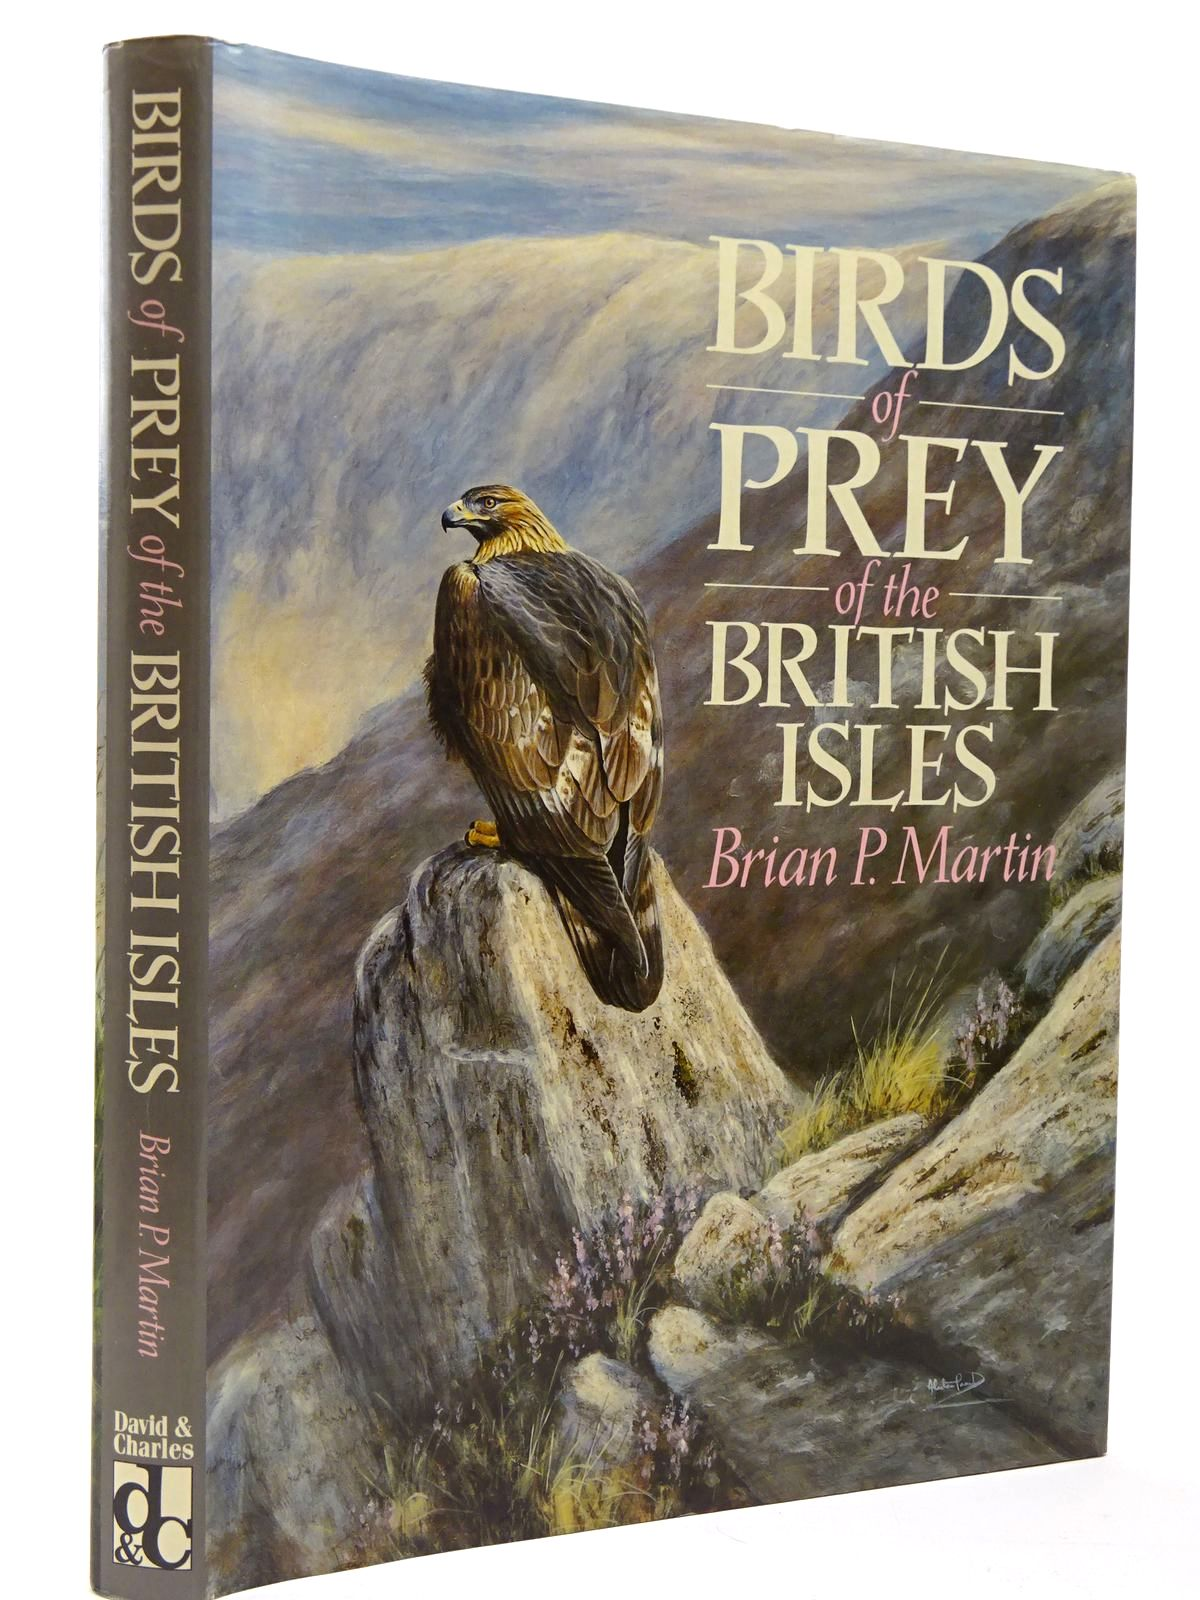 Photo of BIRDS OF PREY OF THE BRITISH ISLES written by Martin, Brian P. illustrated by Prout, Alastair published by David & Charles (STOCK CODE: 2129817)  for sale by Stella & Rose's Books